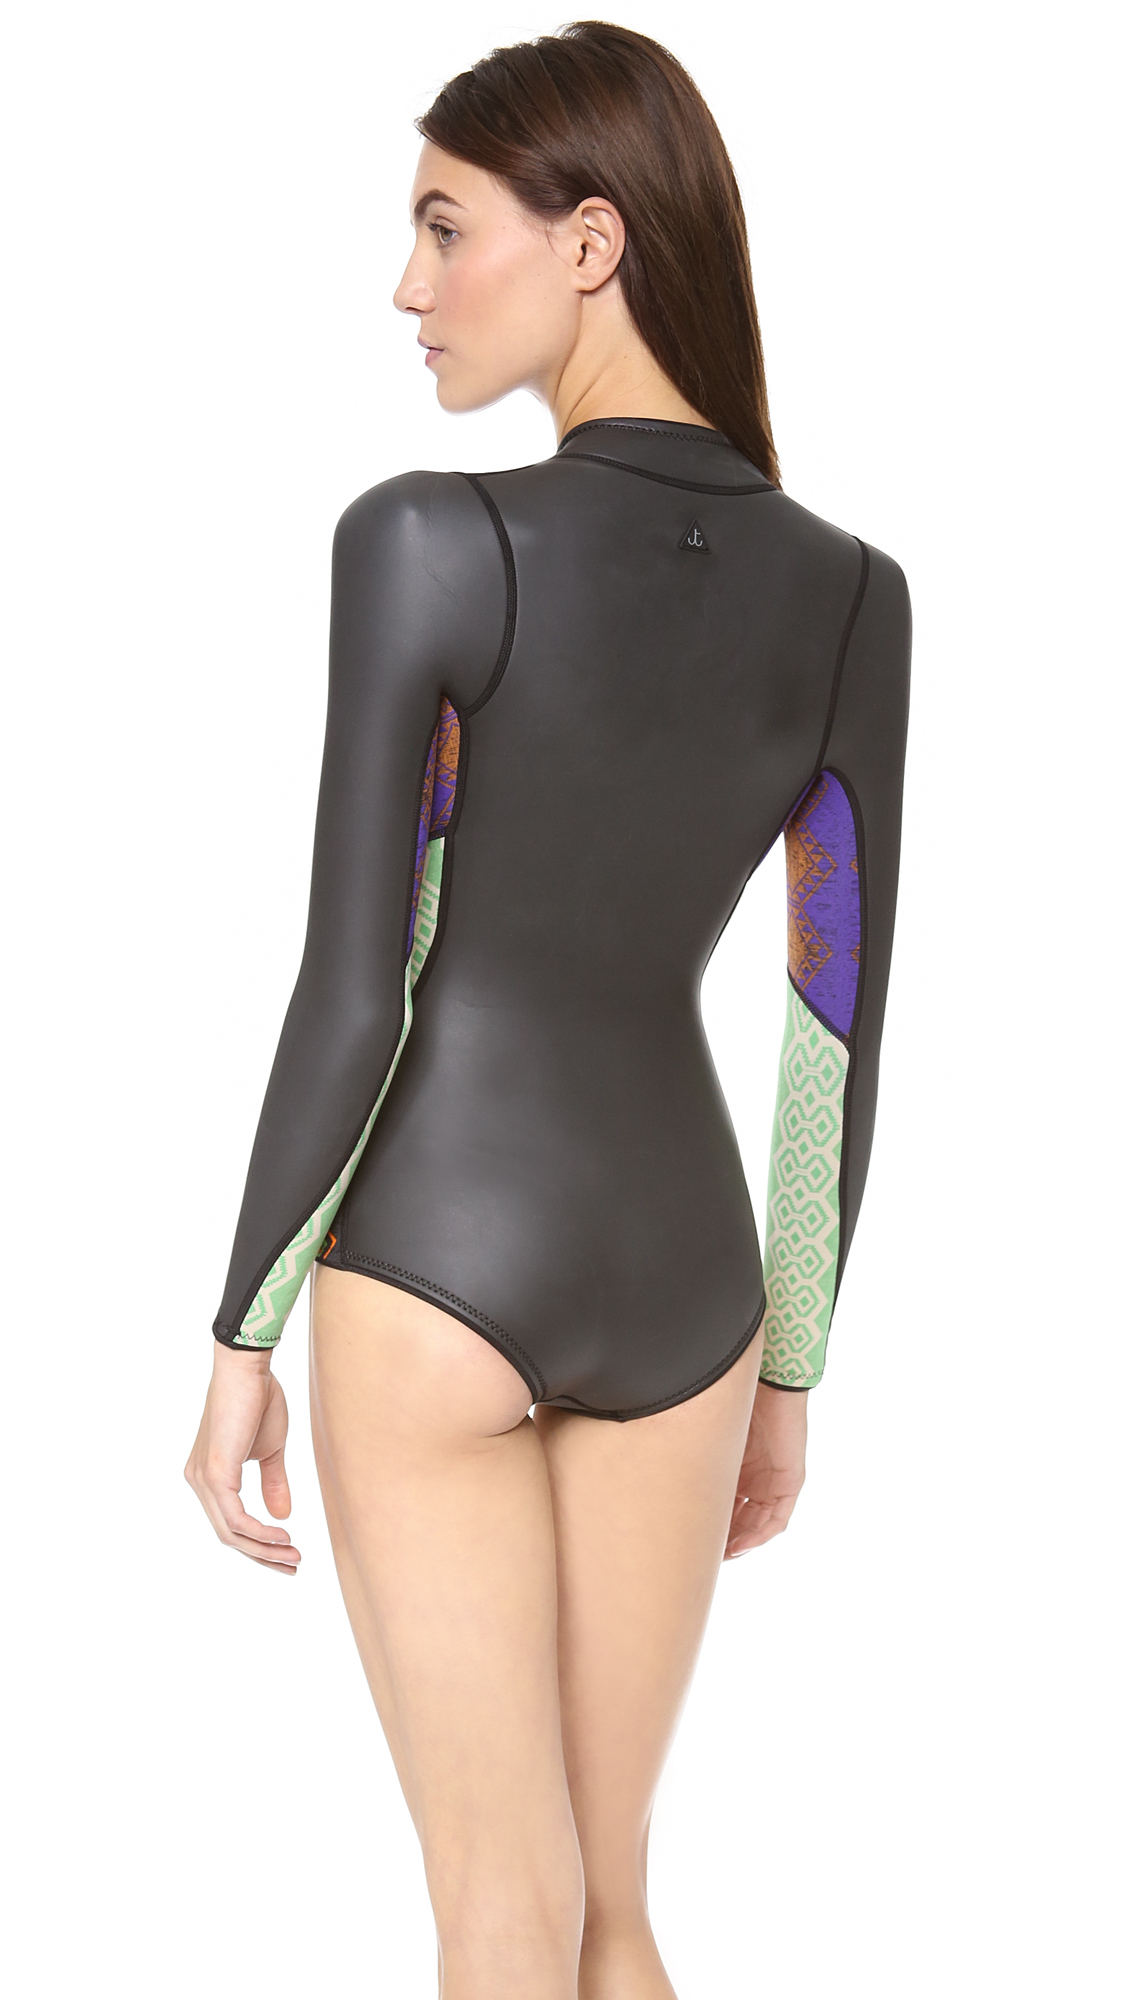 354a5af1b3260 Tallow Tembisa Long Sleeve Wetsuit